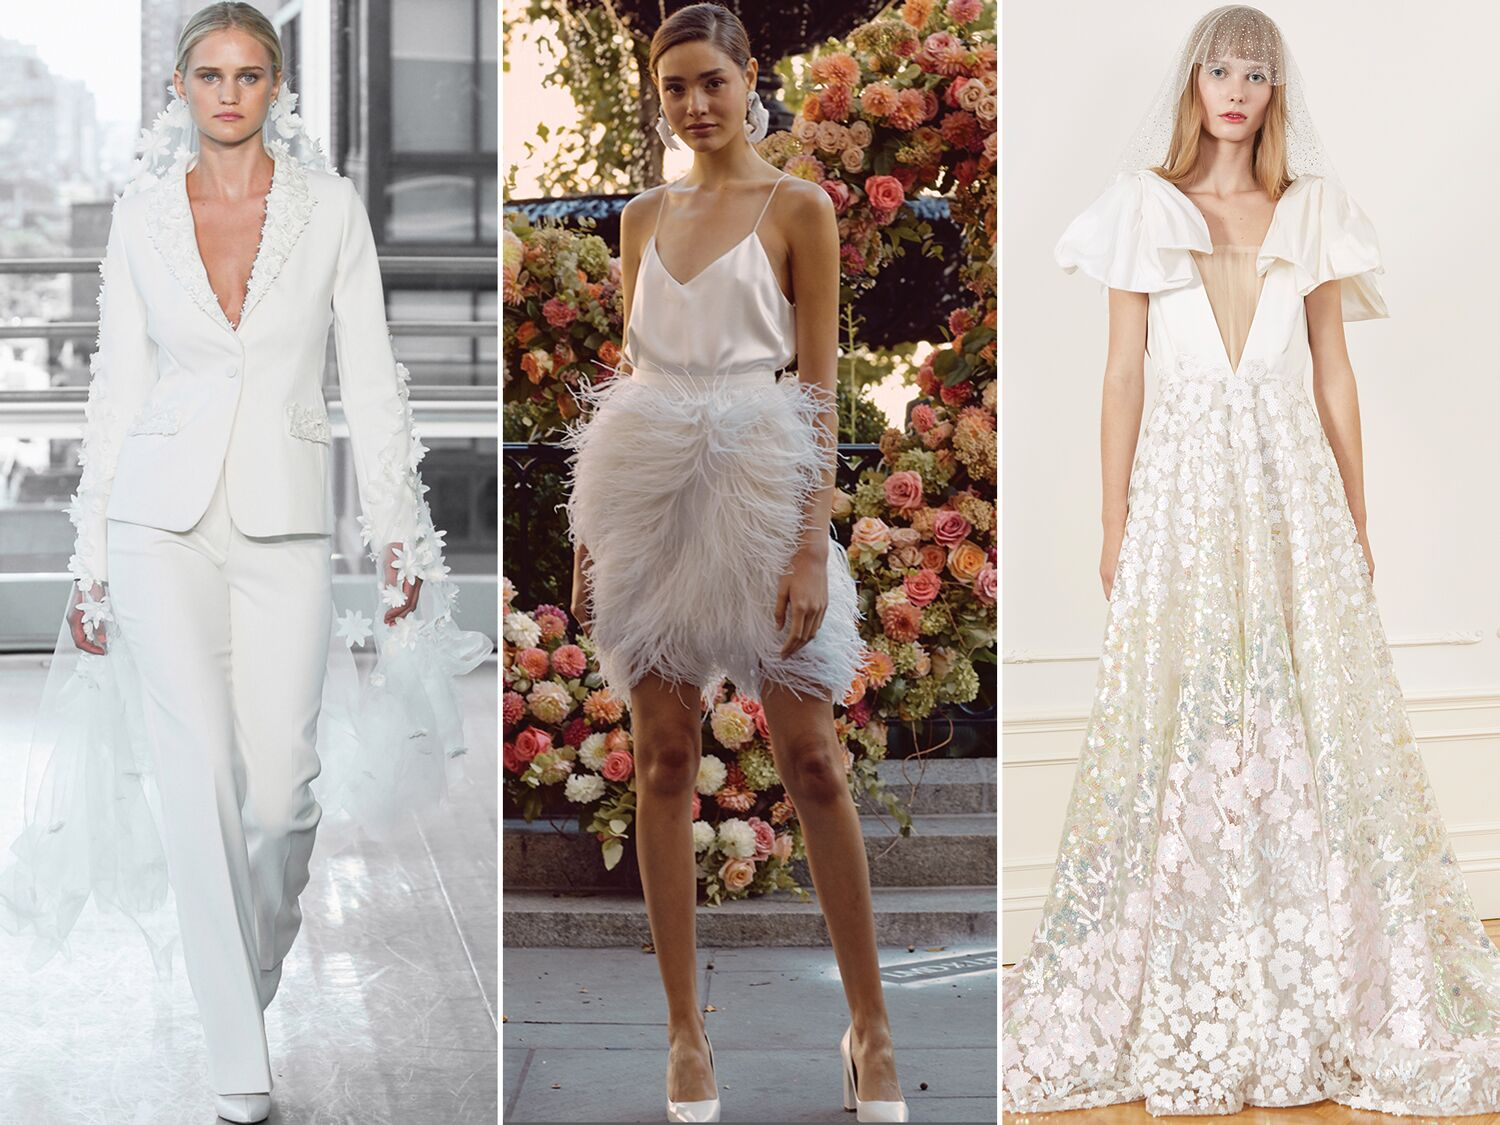 The 2020 Wedding Dress Trends New Brides Need To See